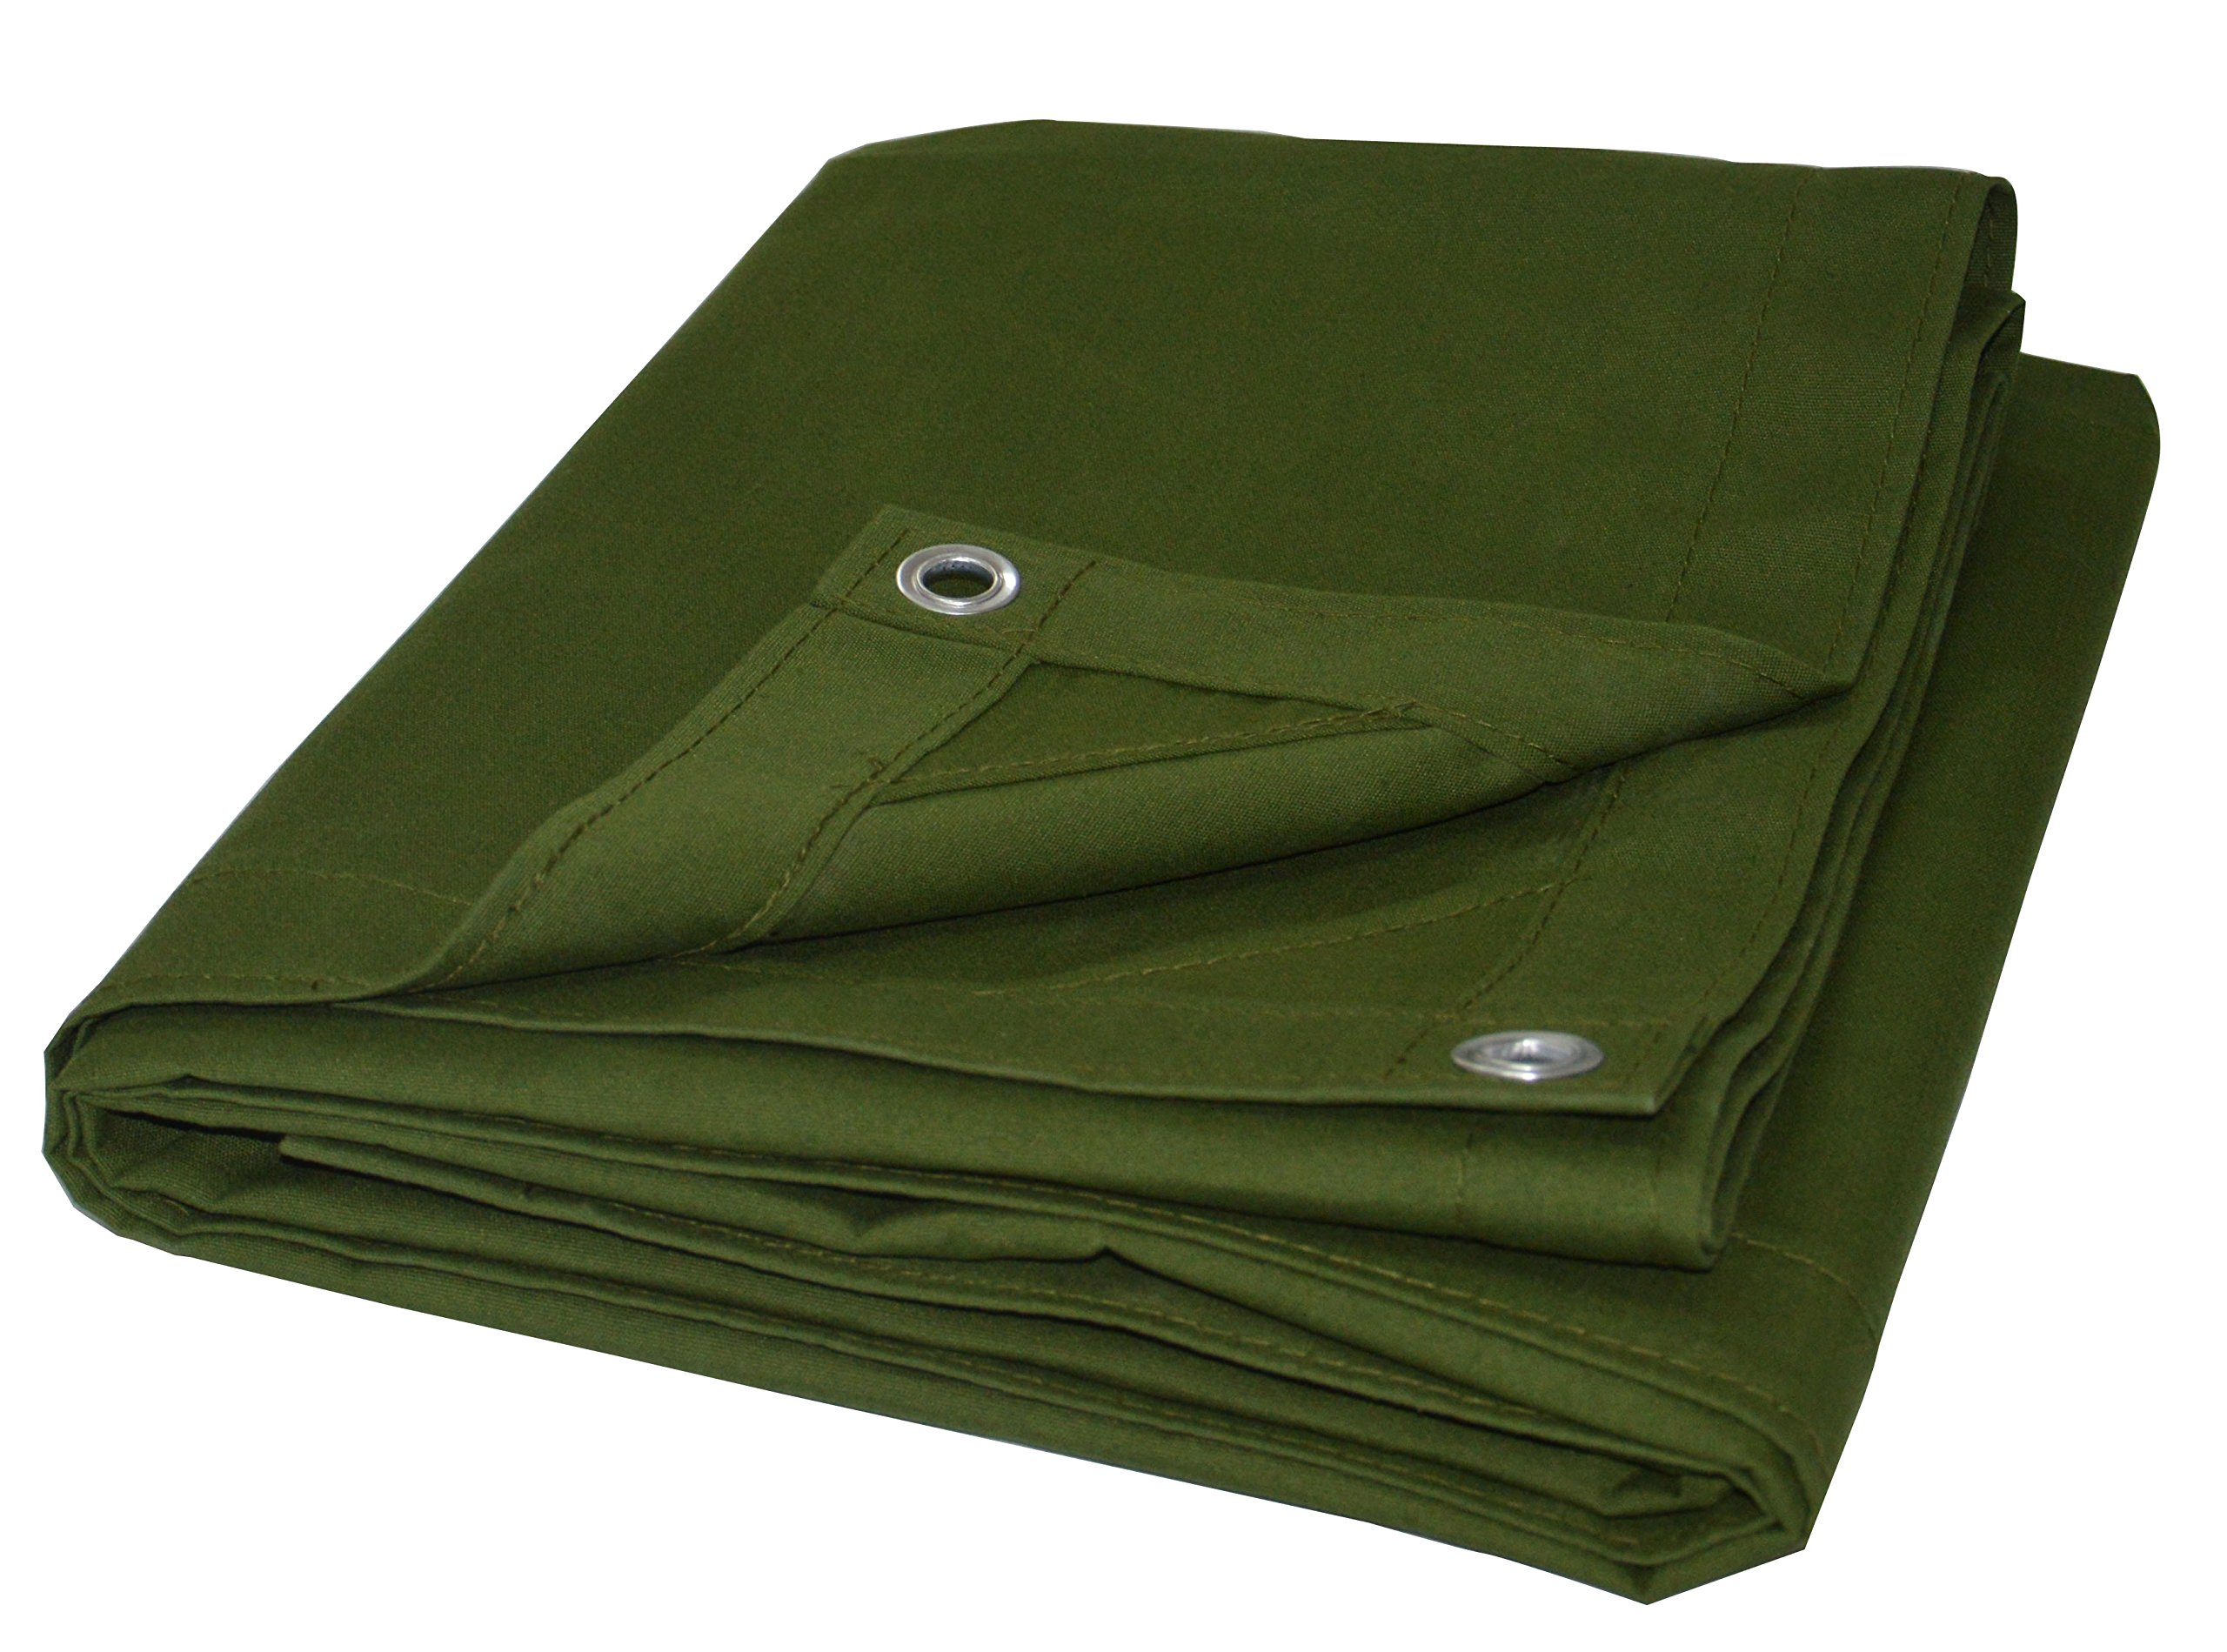 Cartman Olive Drab 10 oz Canvas Tarpaulin 3 Sizes for Option (8' x 10') by CARTMAN